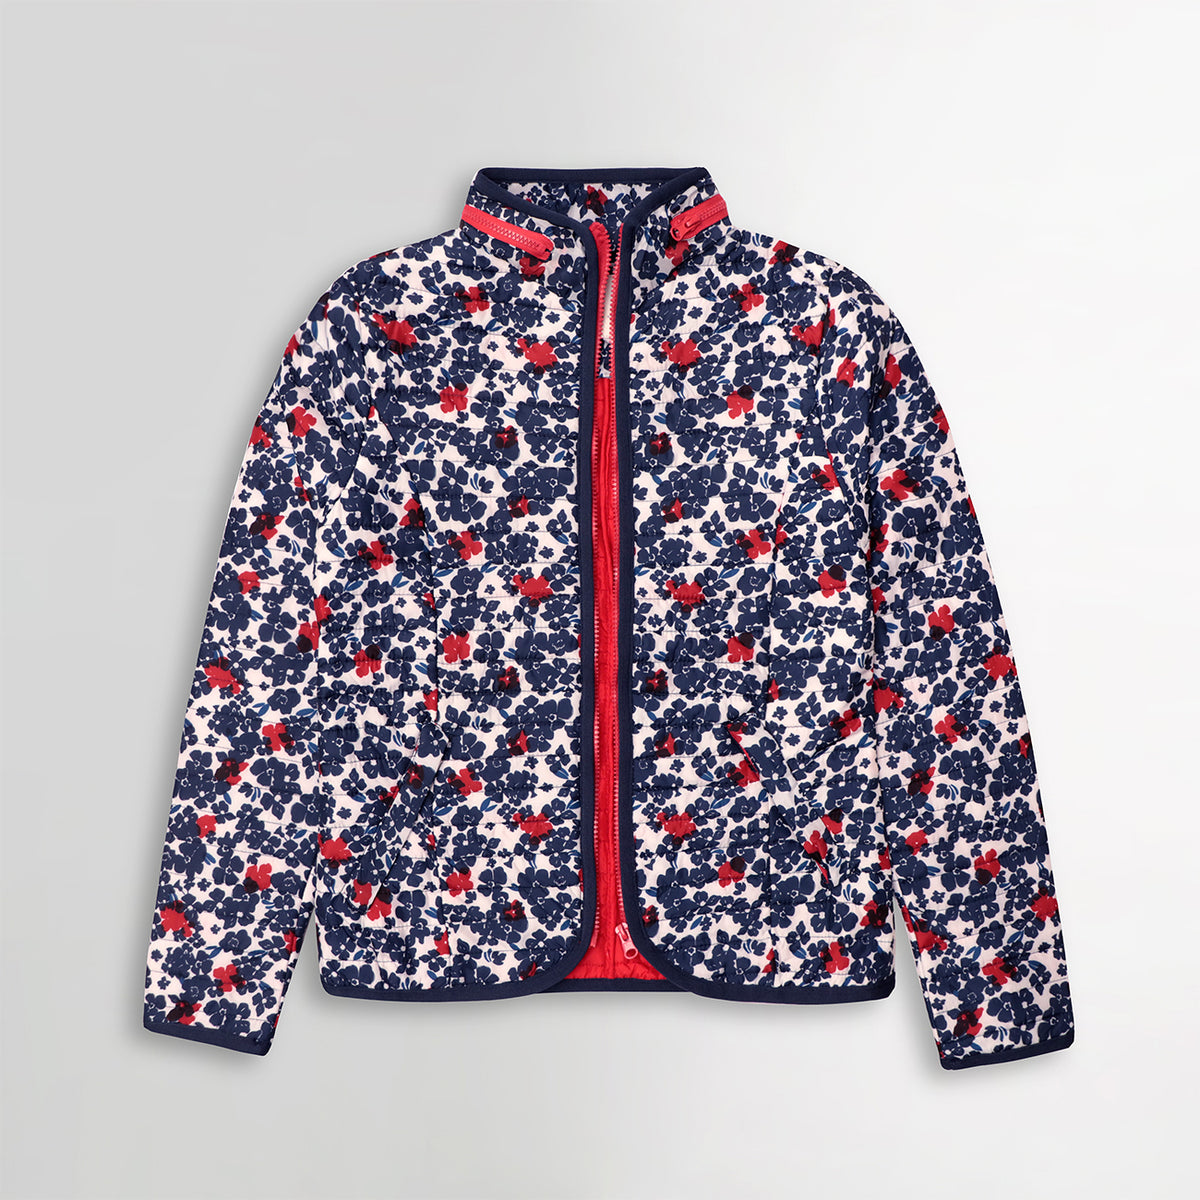 WOMEN LIGHT WEIGHT ALL OVER FLORAL PRINT PUFFER JACKET (BK-10370)